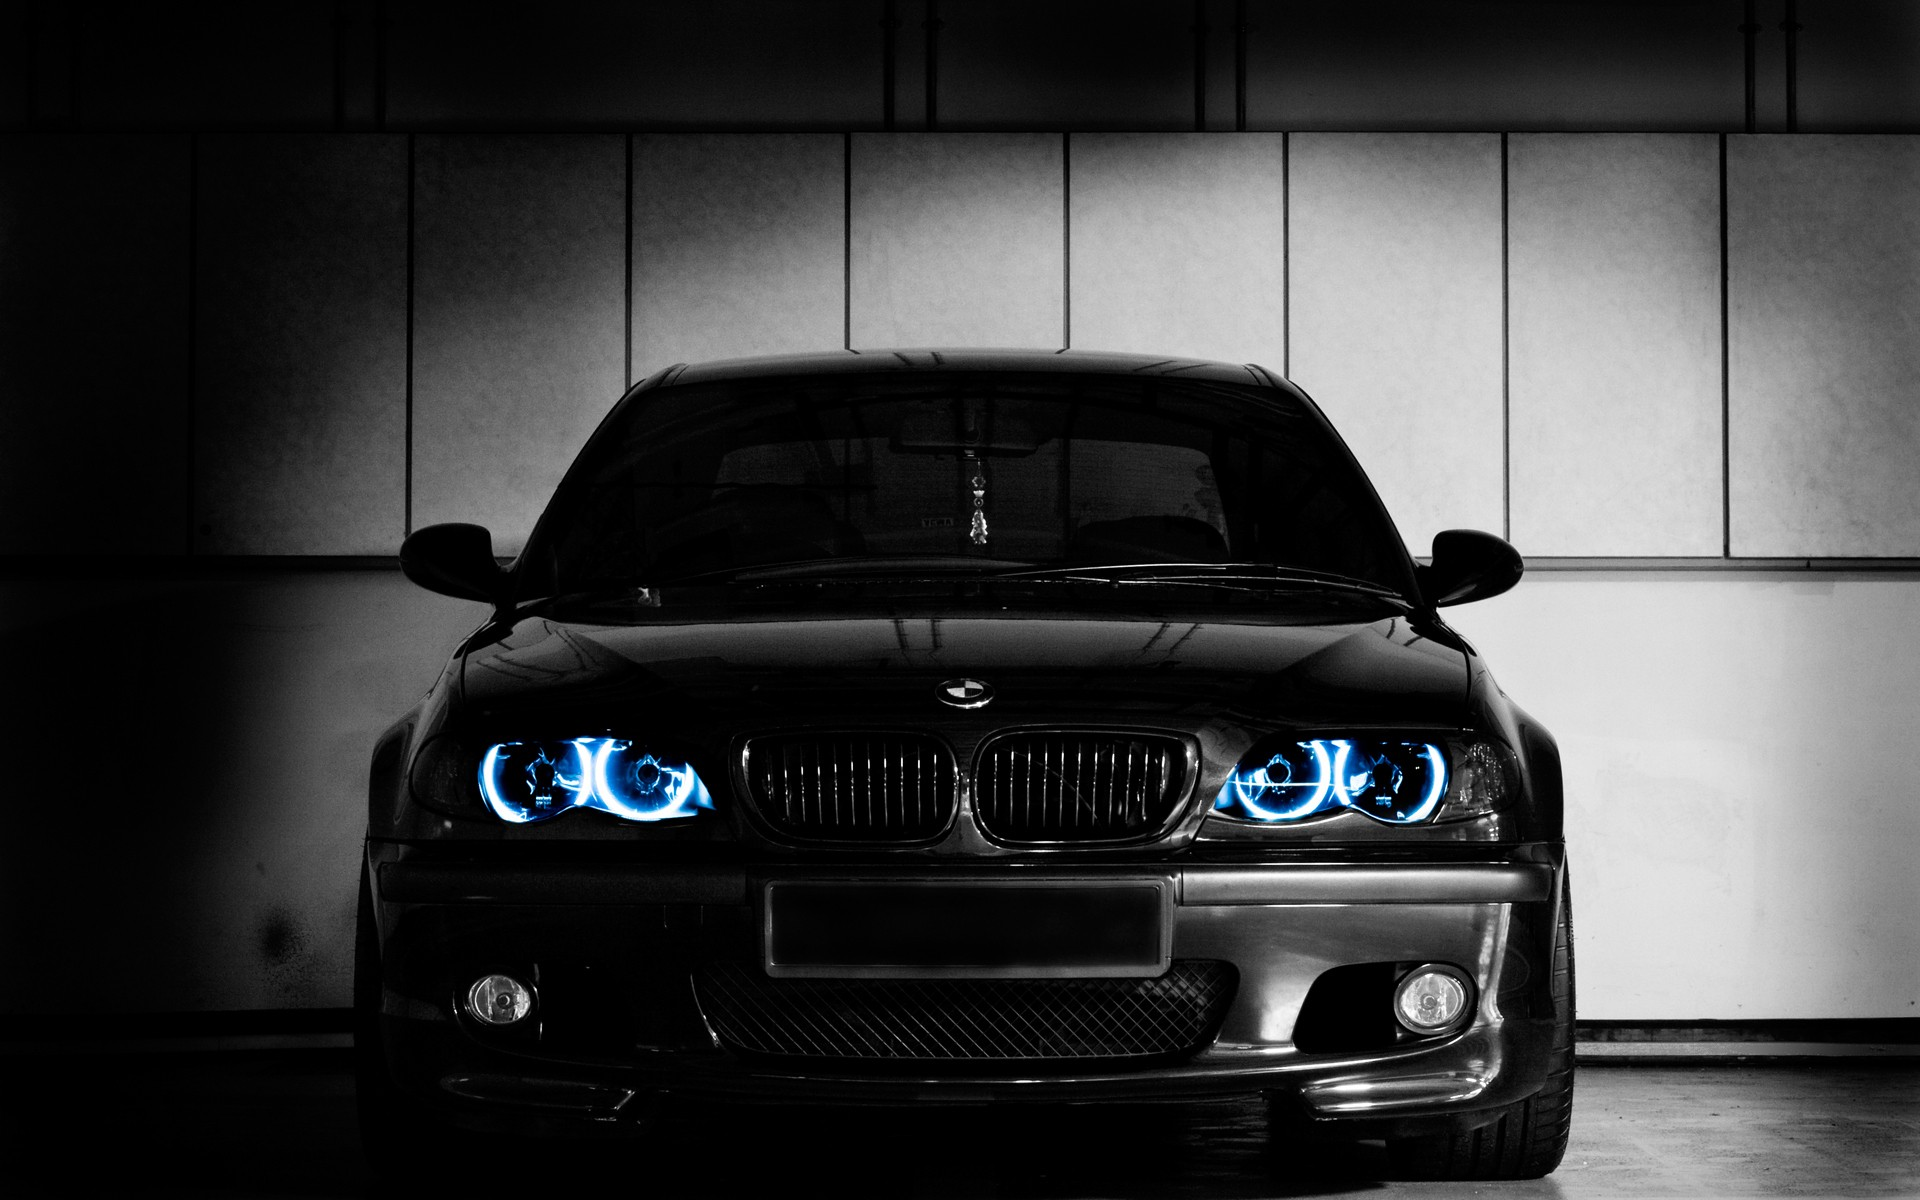 black cars BMW E46 HD Wallpaper